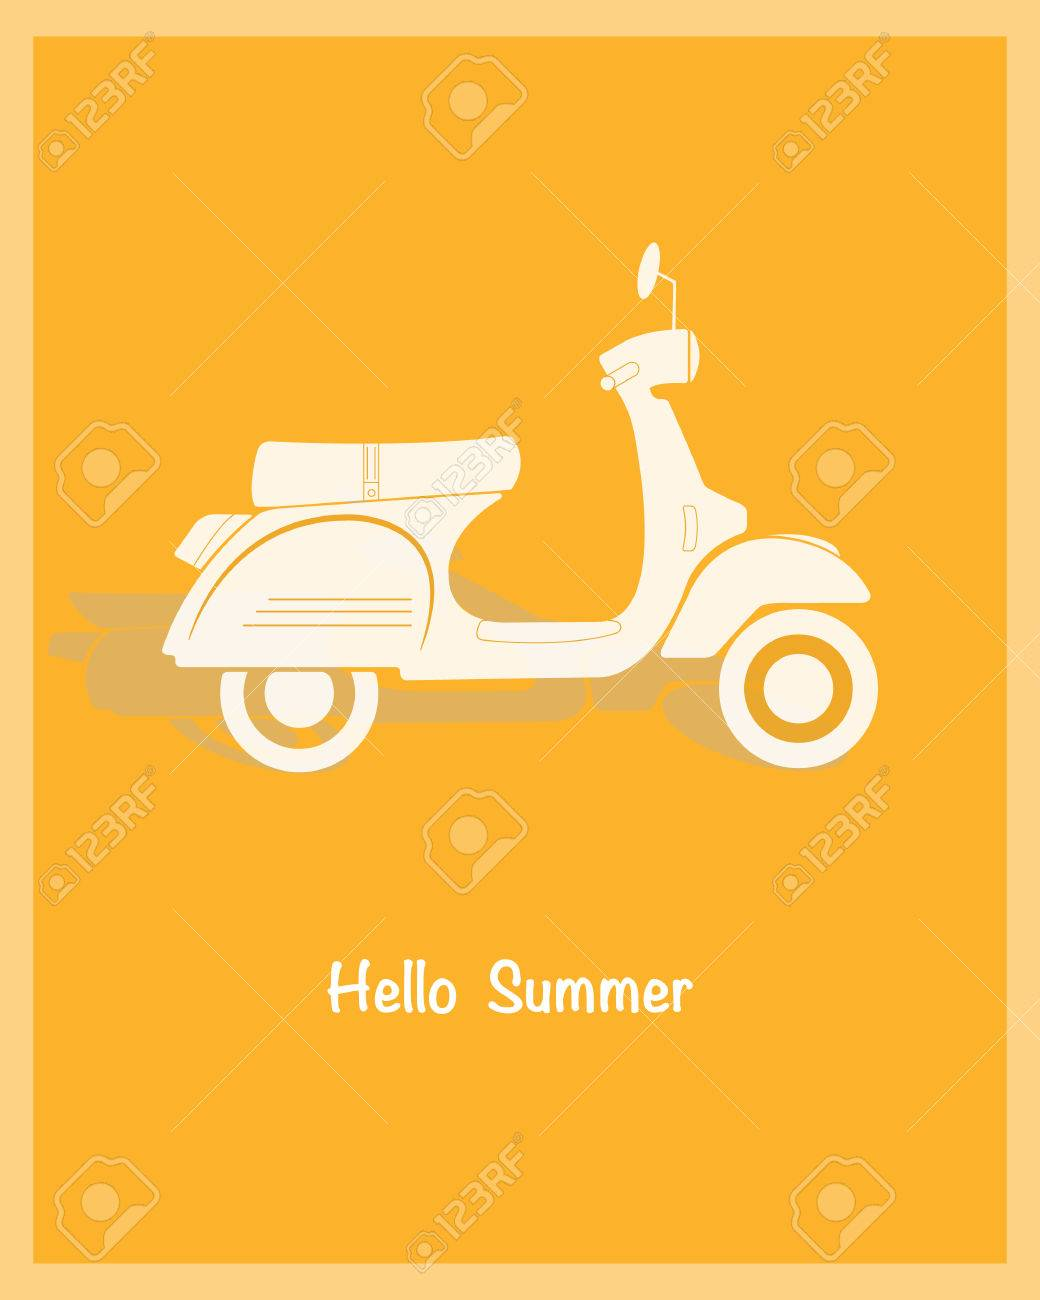 Retro Poster Design With Vintage Scooter Illustration Sample Royalty Free Cliparts Vectors And Stock Illustration Image 63024680